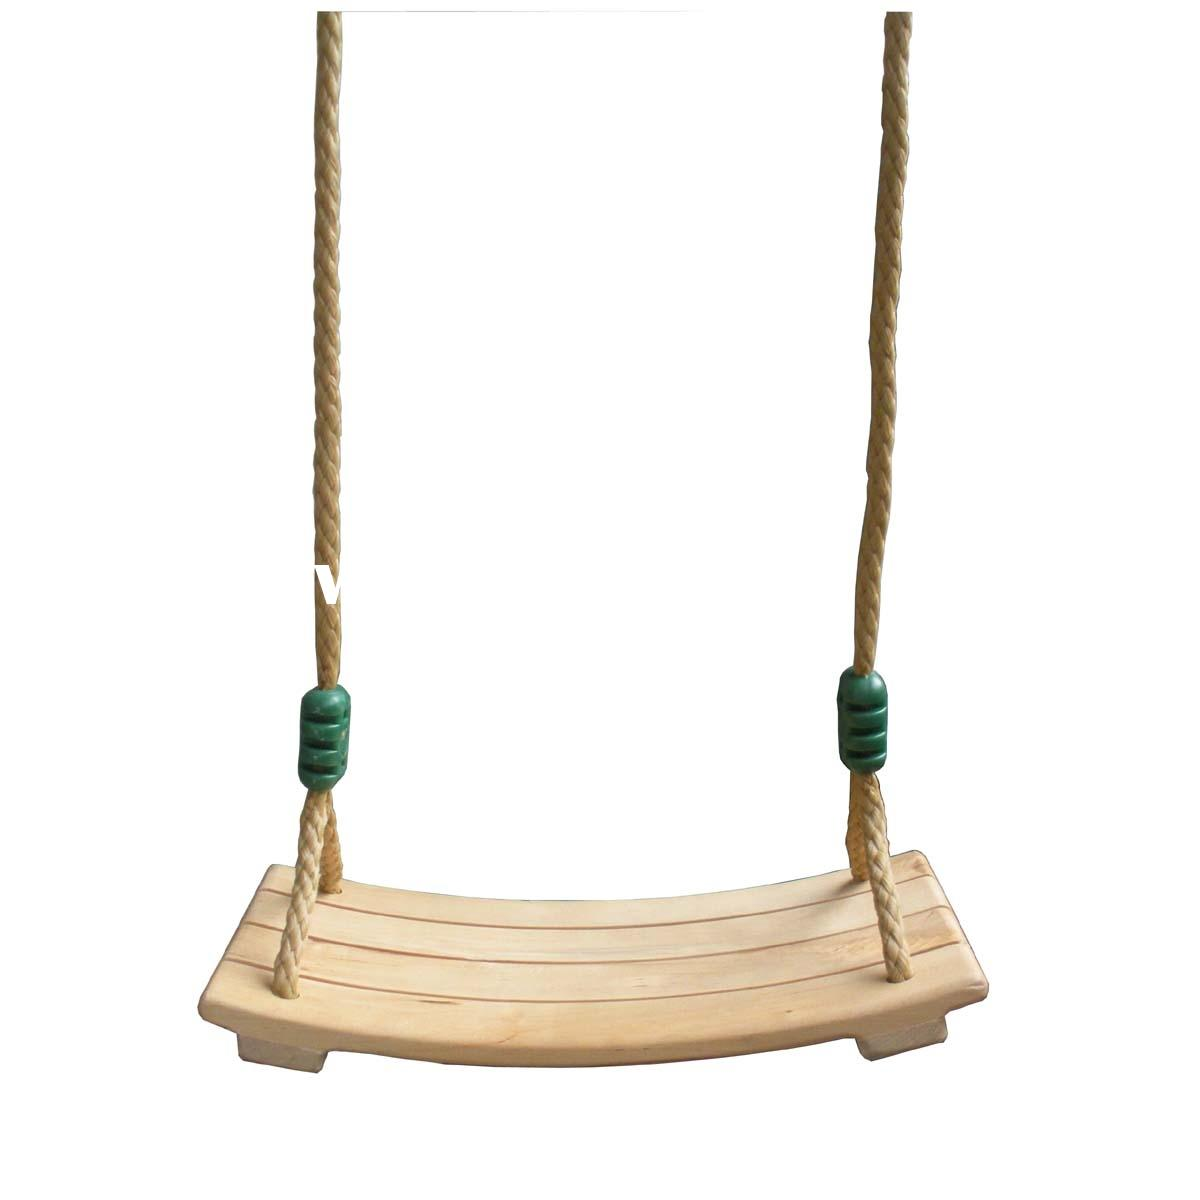 Woodworking wooden swing PDF Free Download